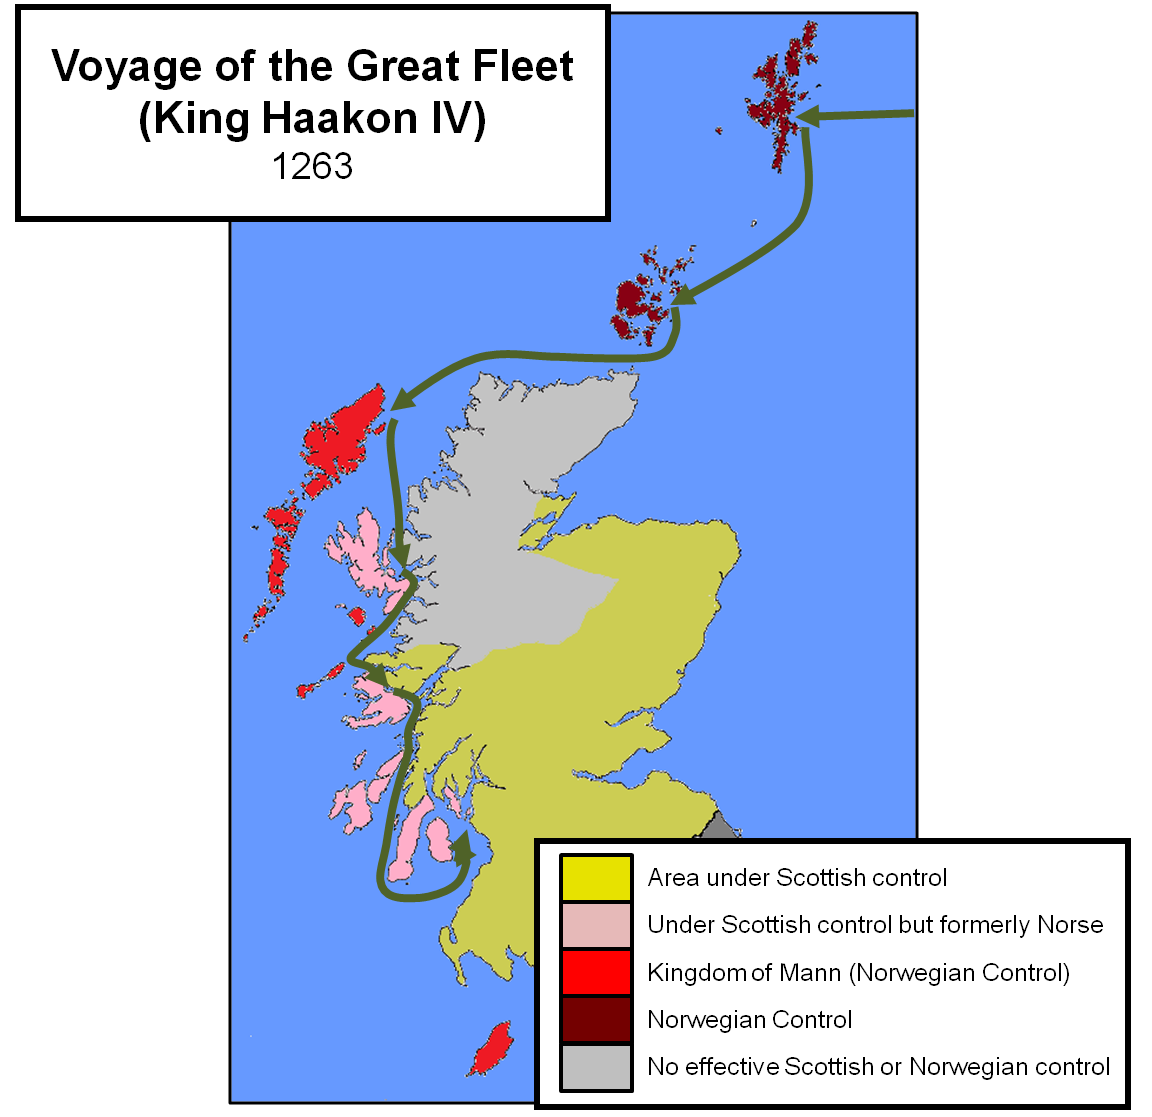 Voyage of Haakon IV. With a fleet of between 120-200 ships, the Norwegian  King sailed first to Shetland, then Orkney and Lewis before working his way  south ...